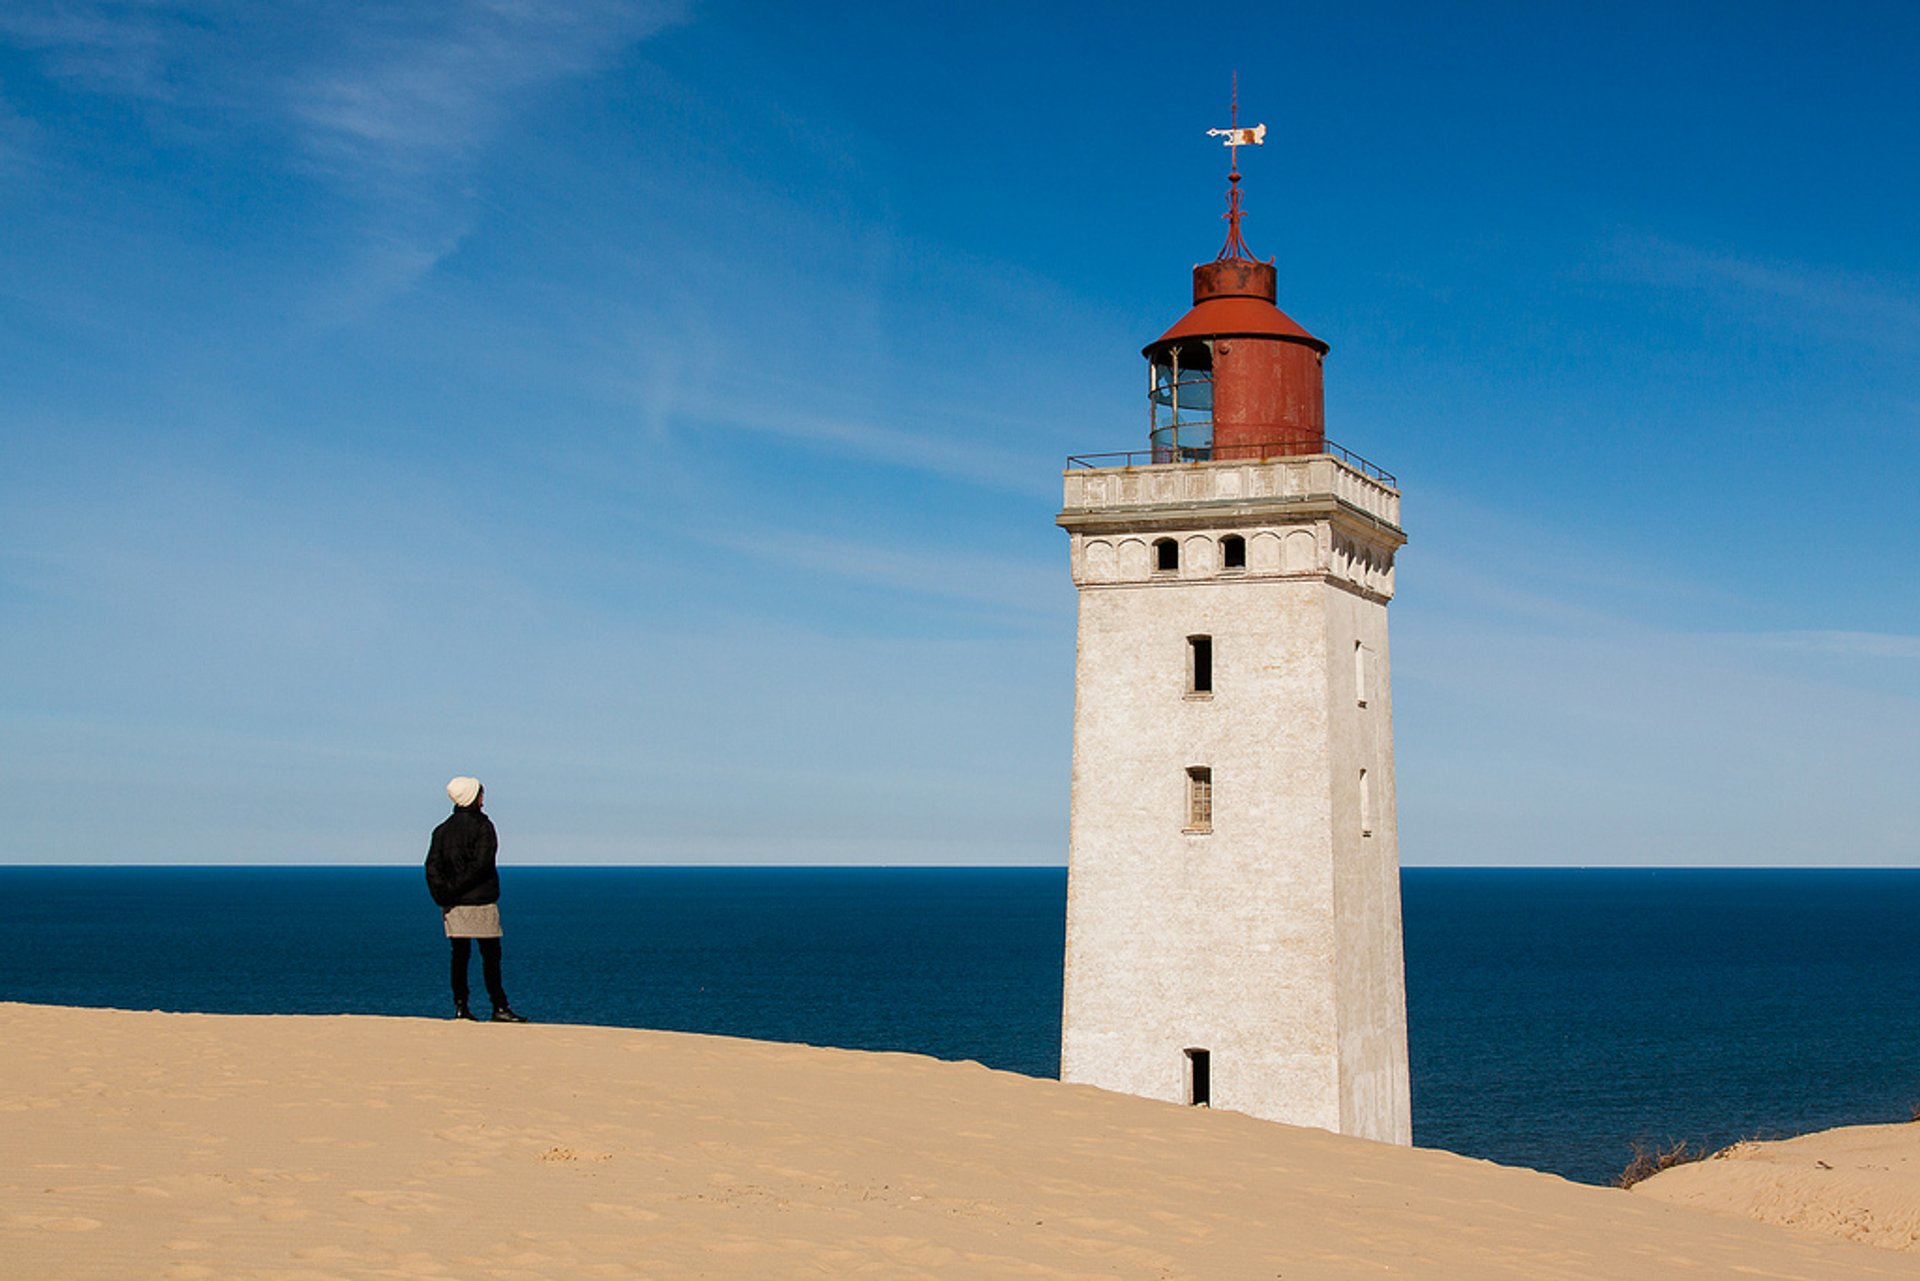 Rubjerg Knude Lighthouse in Denmark 2020 - Best Time